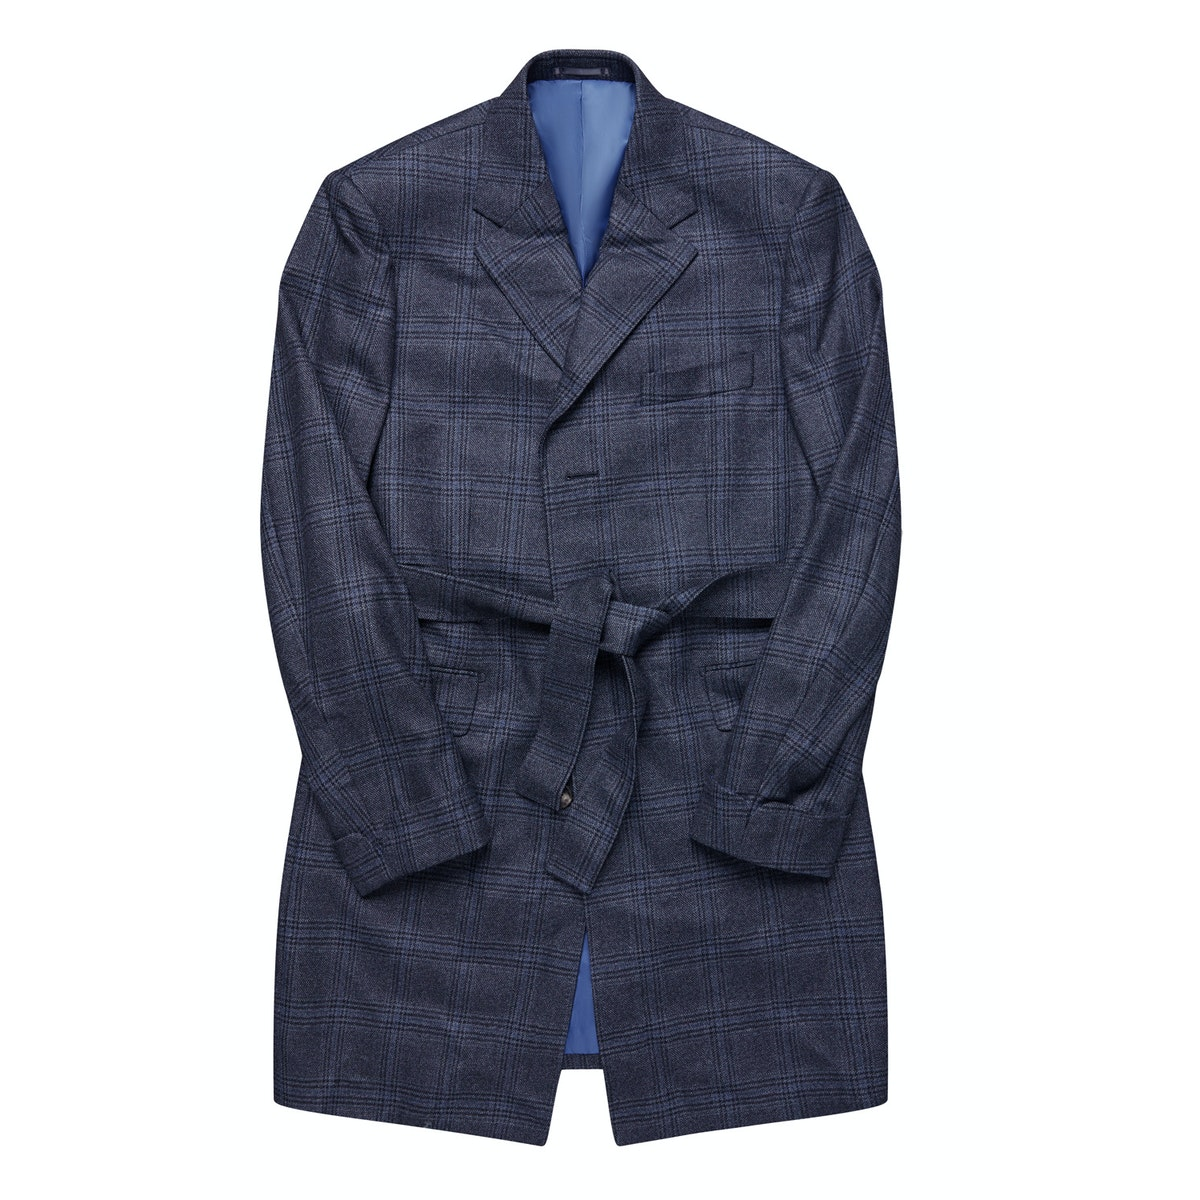 The Riverina Blue Check Plaid Wool Overcoat